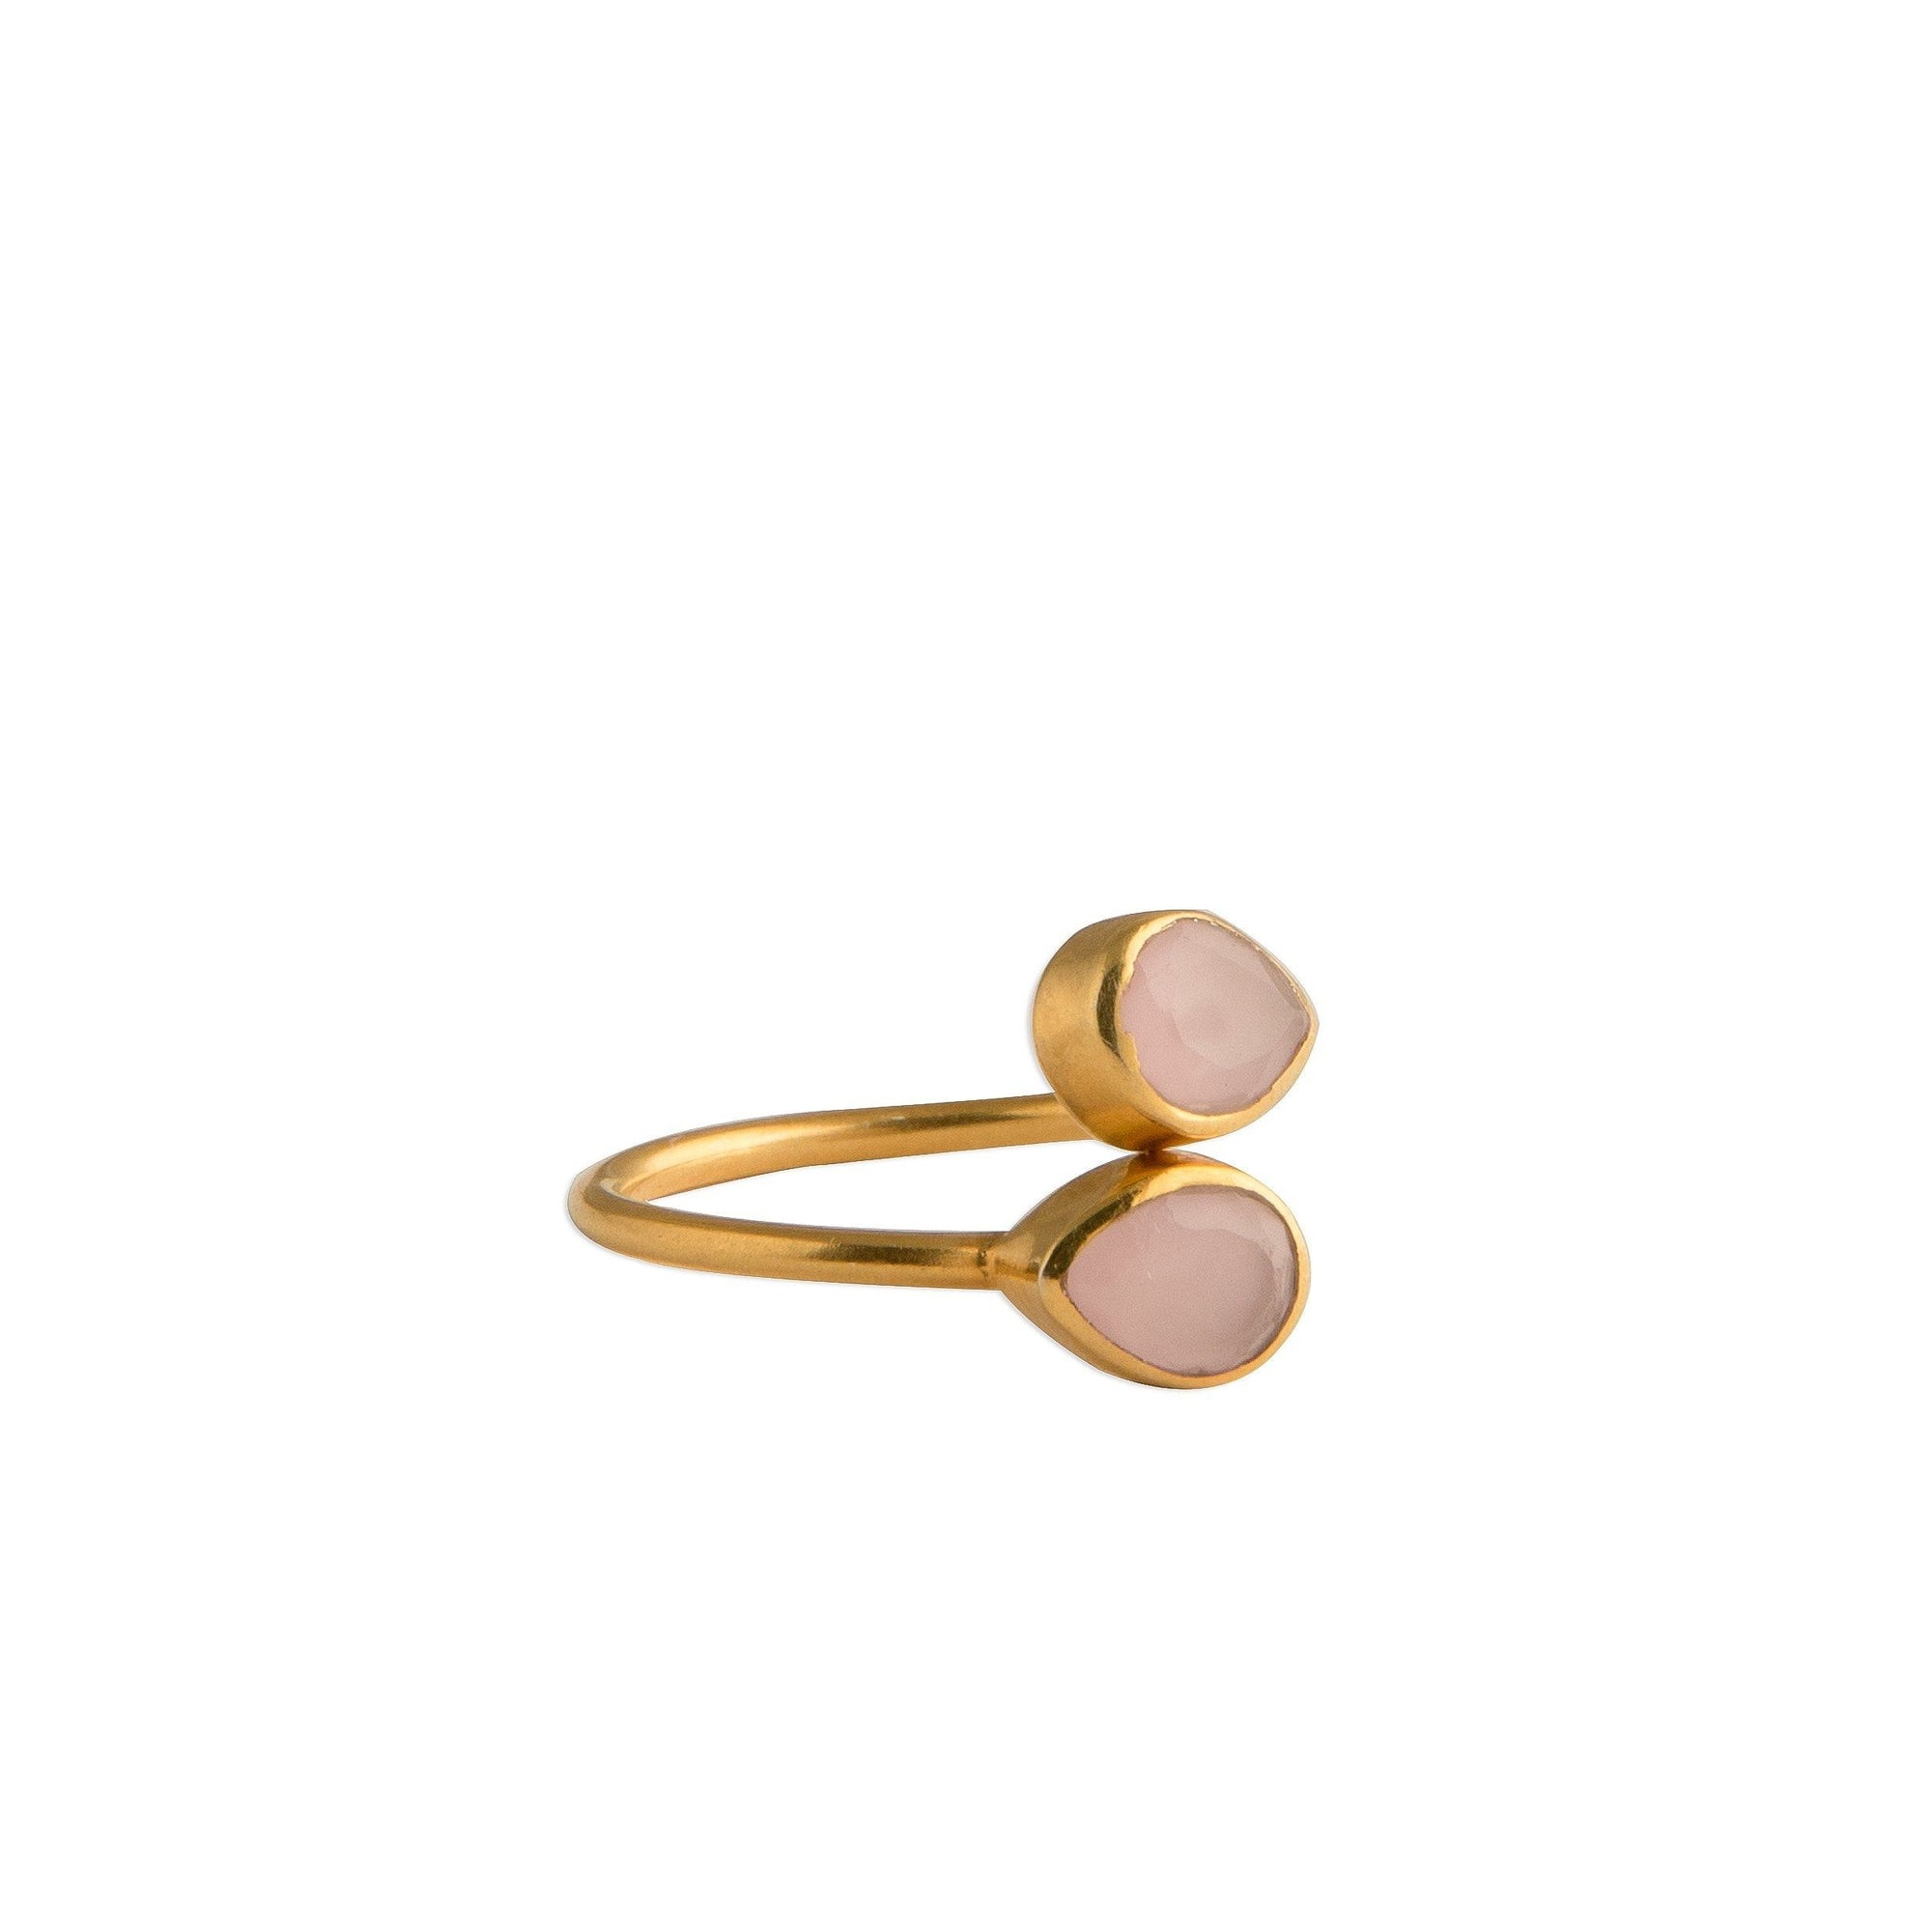 Sasha double tear-drop adjustable ring in rose quartz - Ring